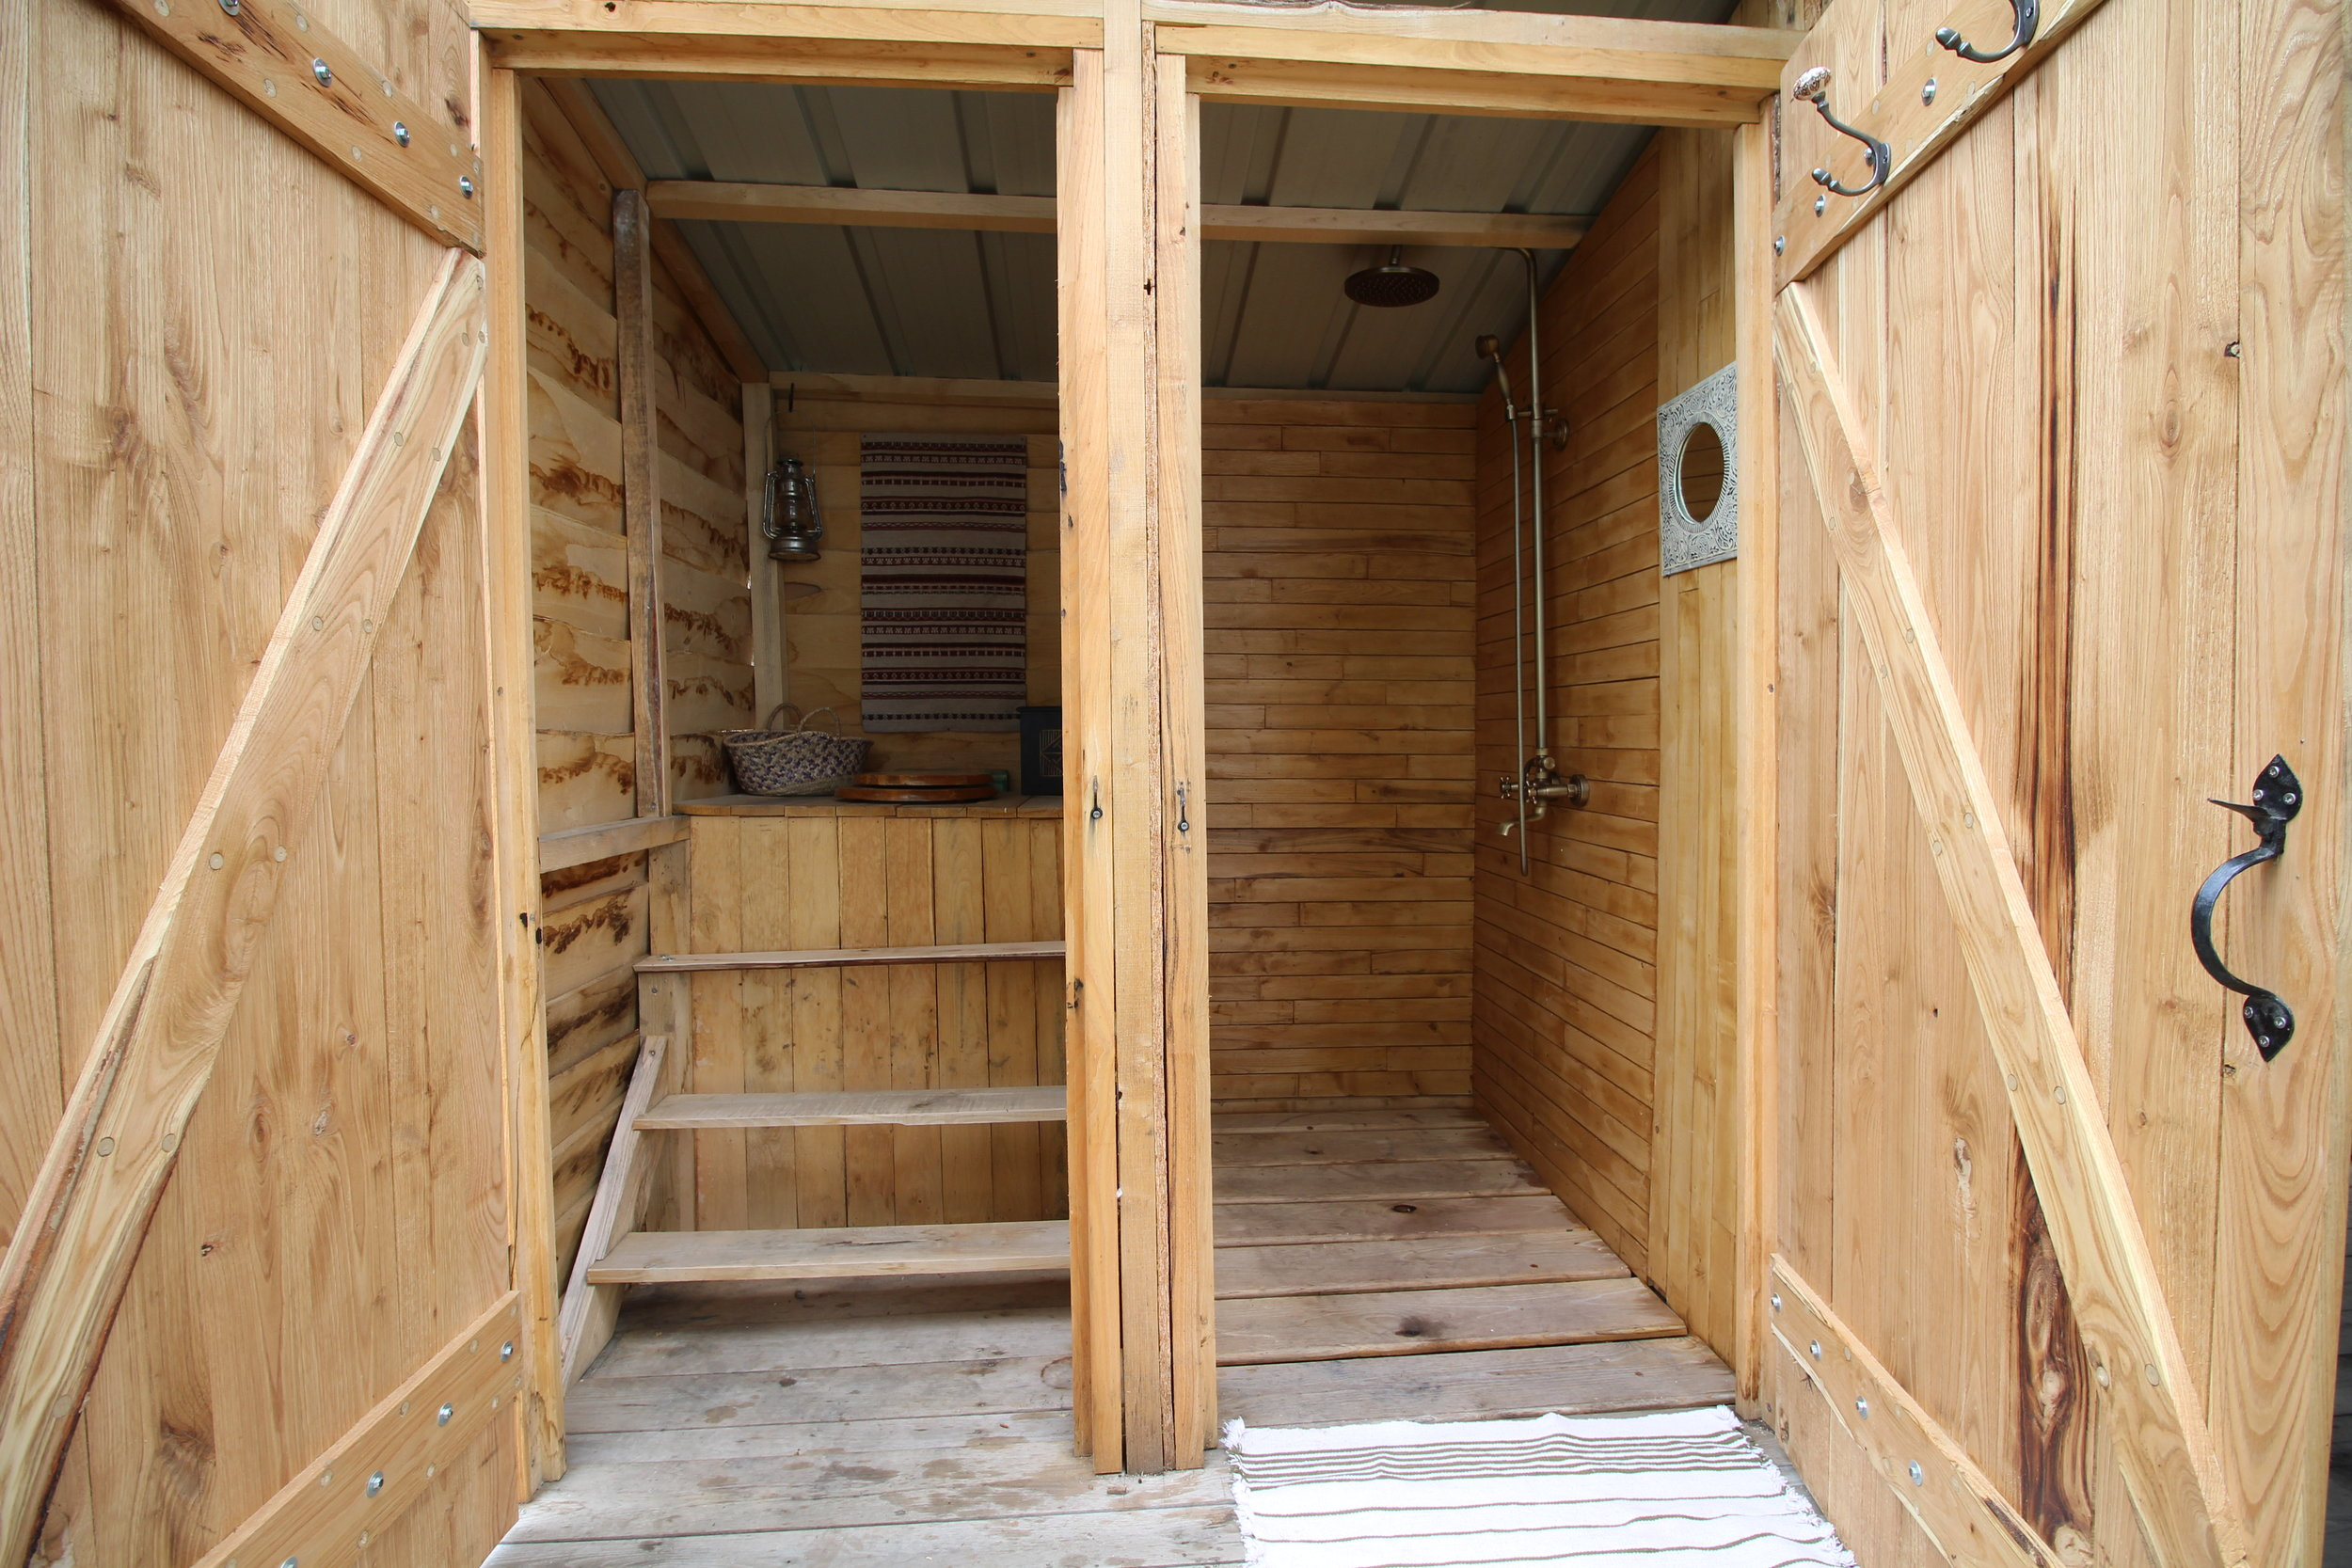 Yurt compost toilet and shower